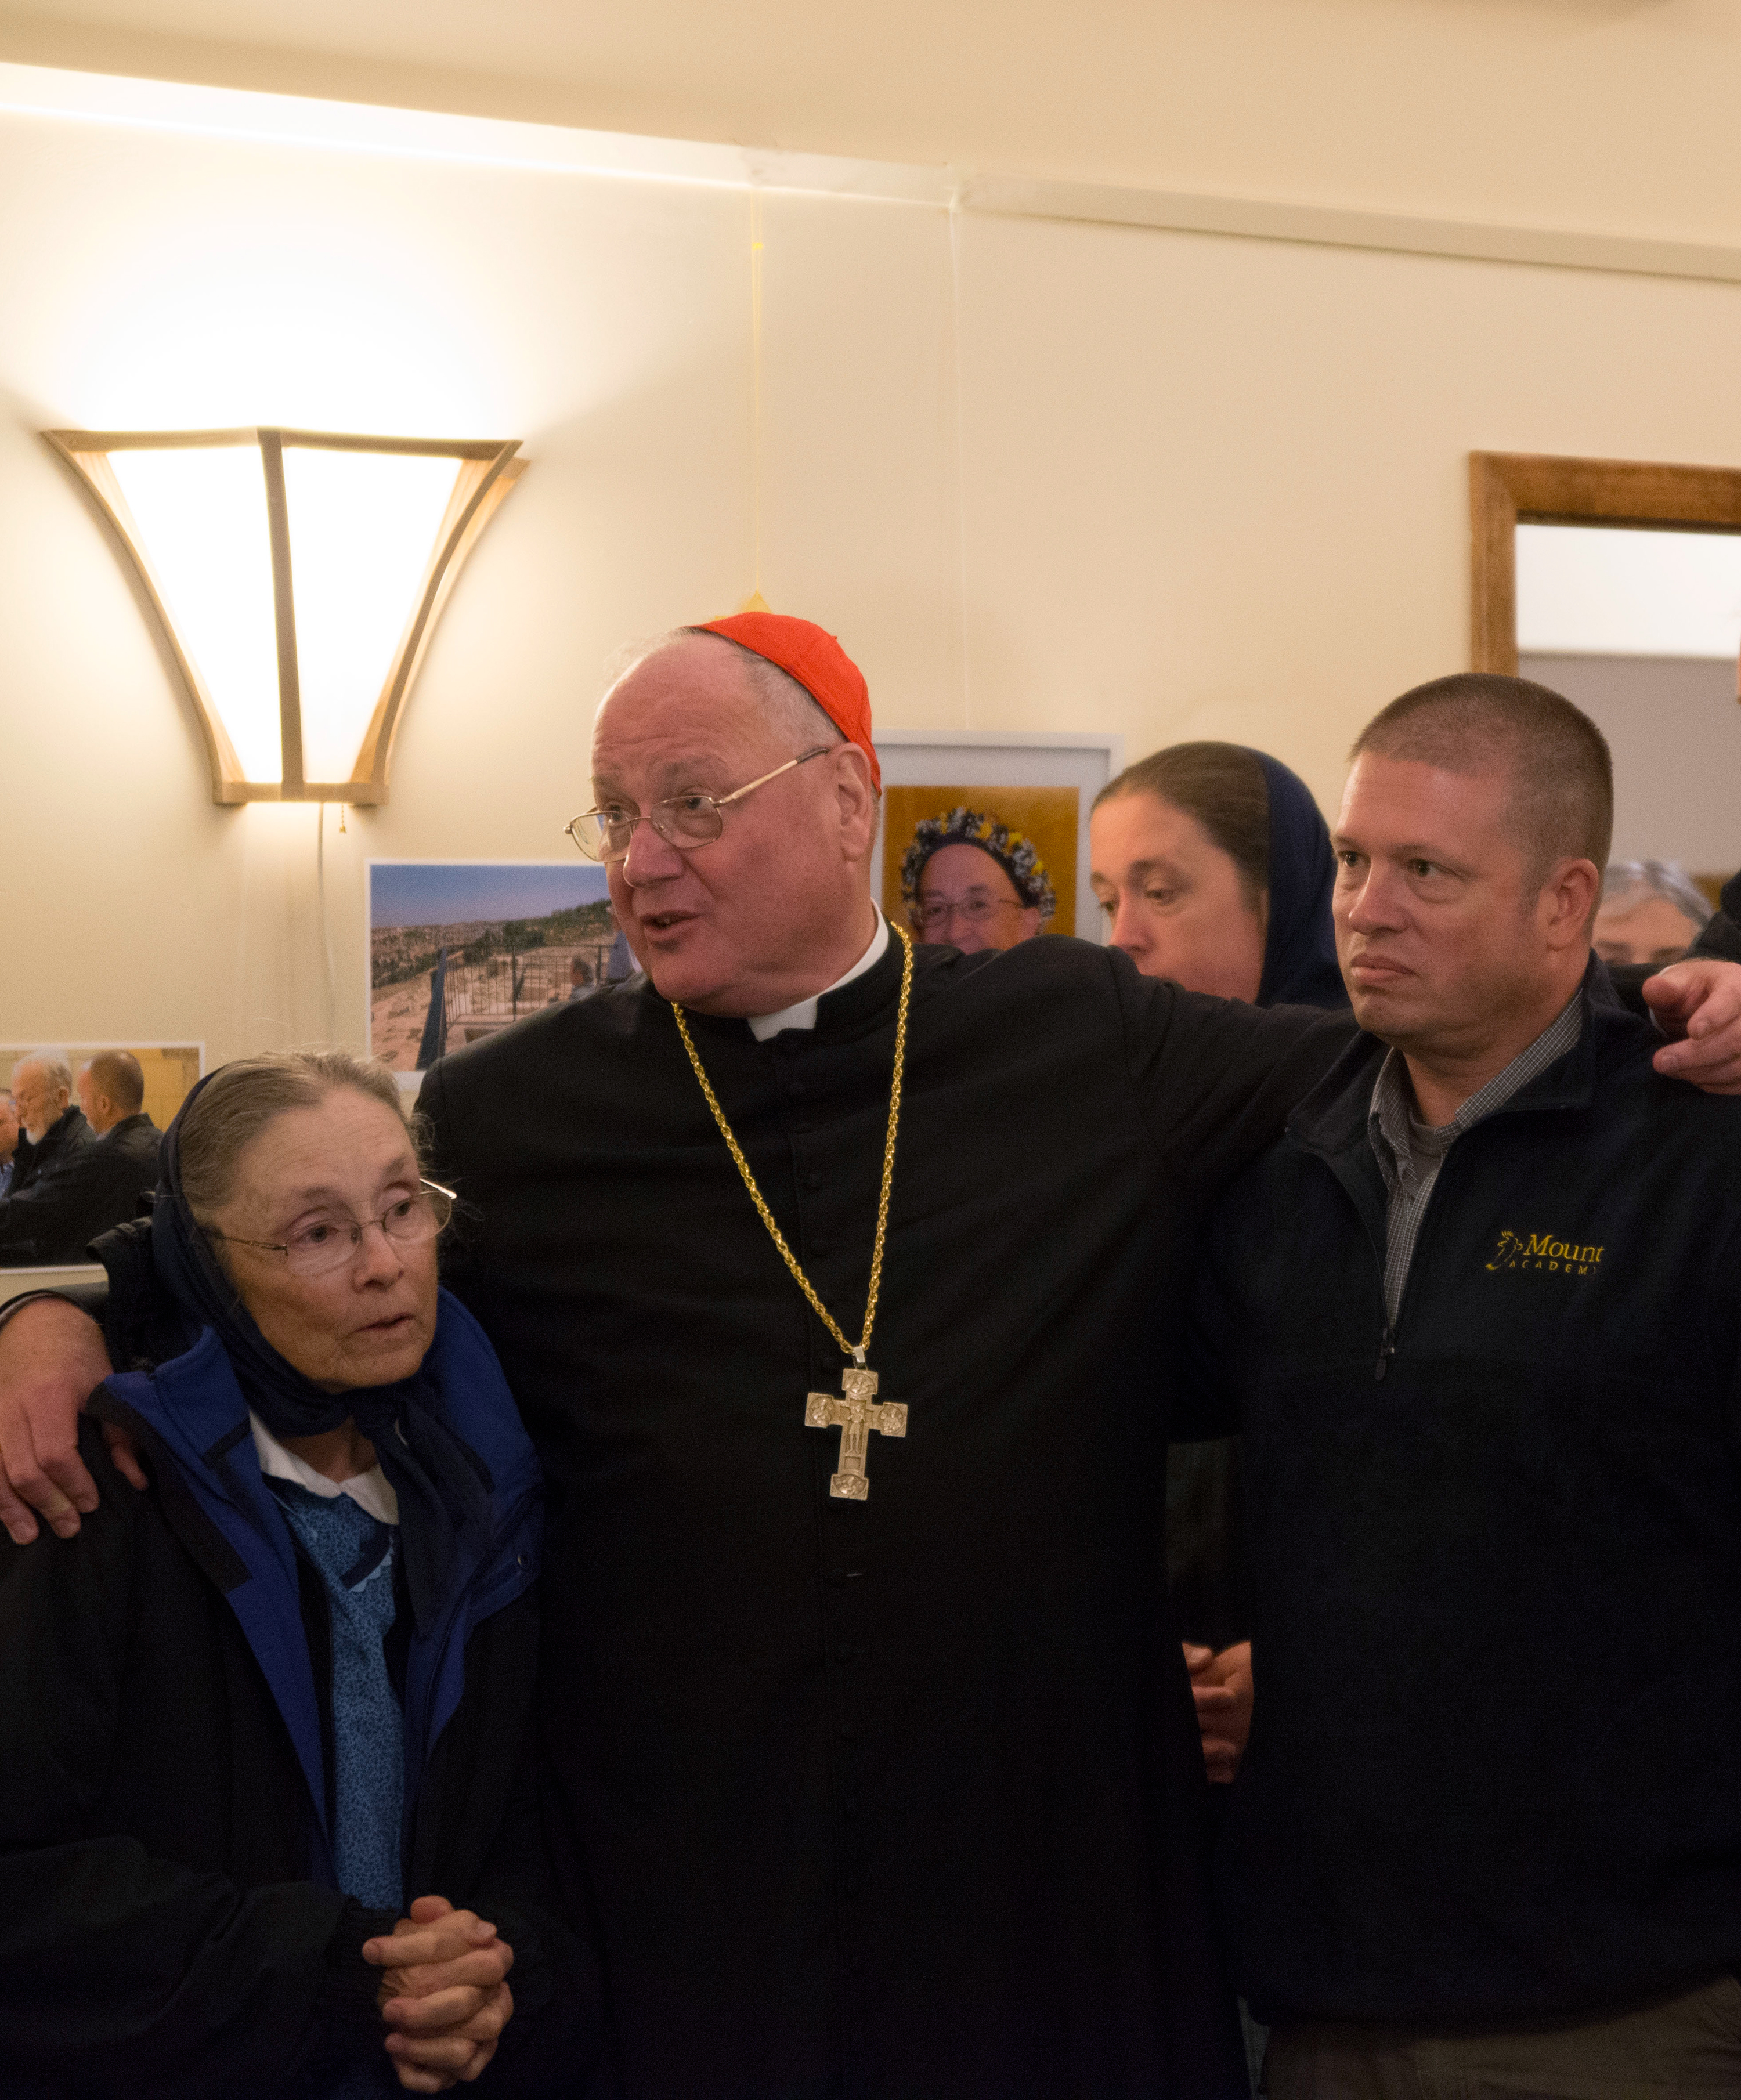 Cardinal Dolan praying with Christoph Arnold's widow Verena and son Heinrich